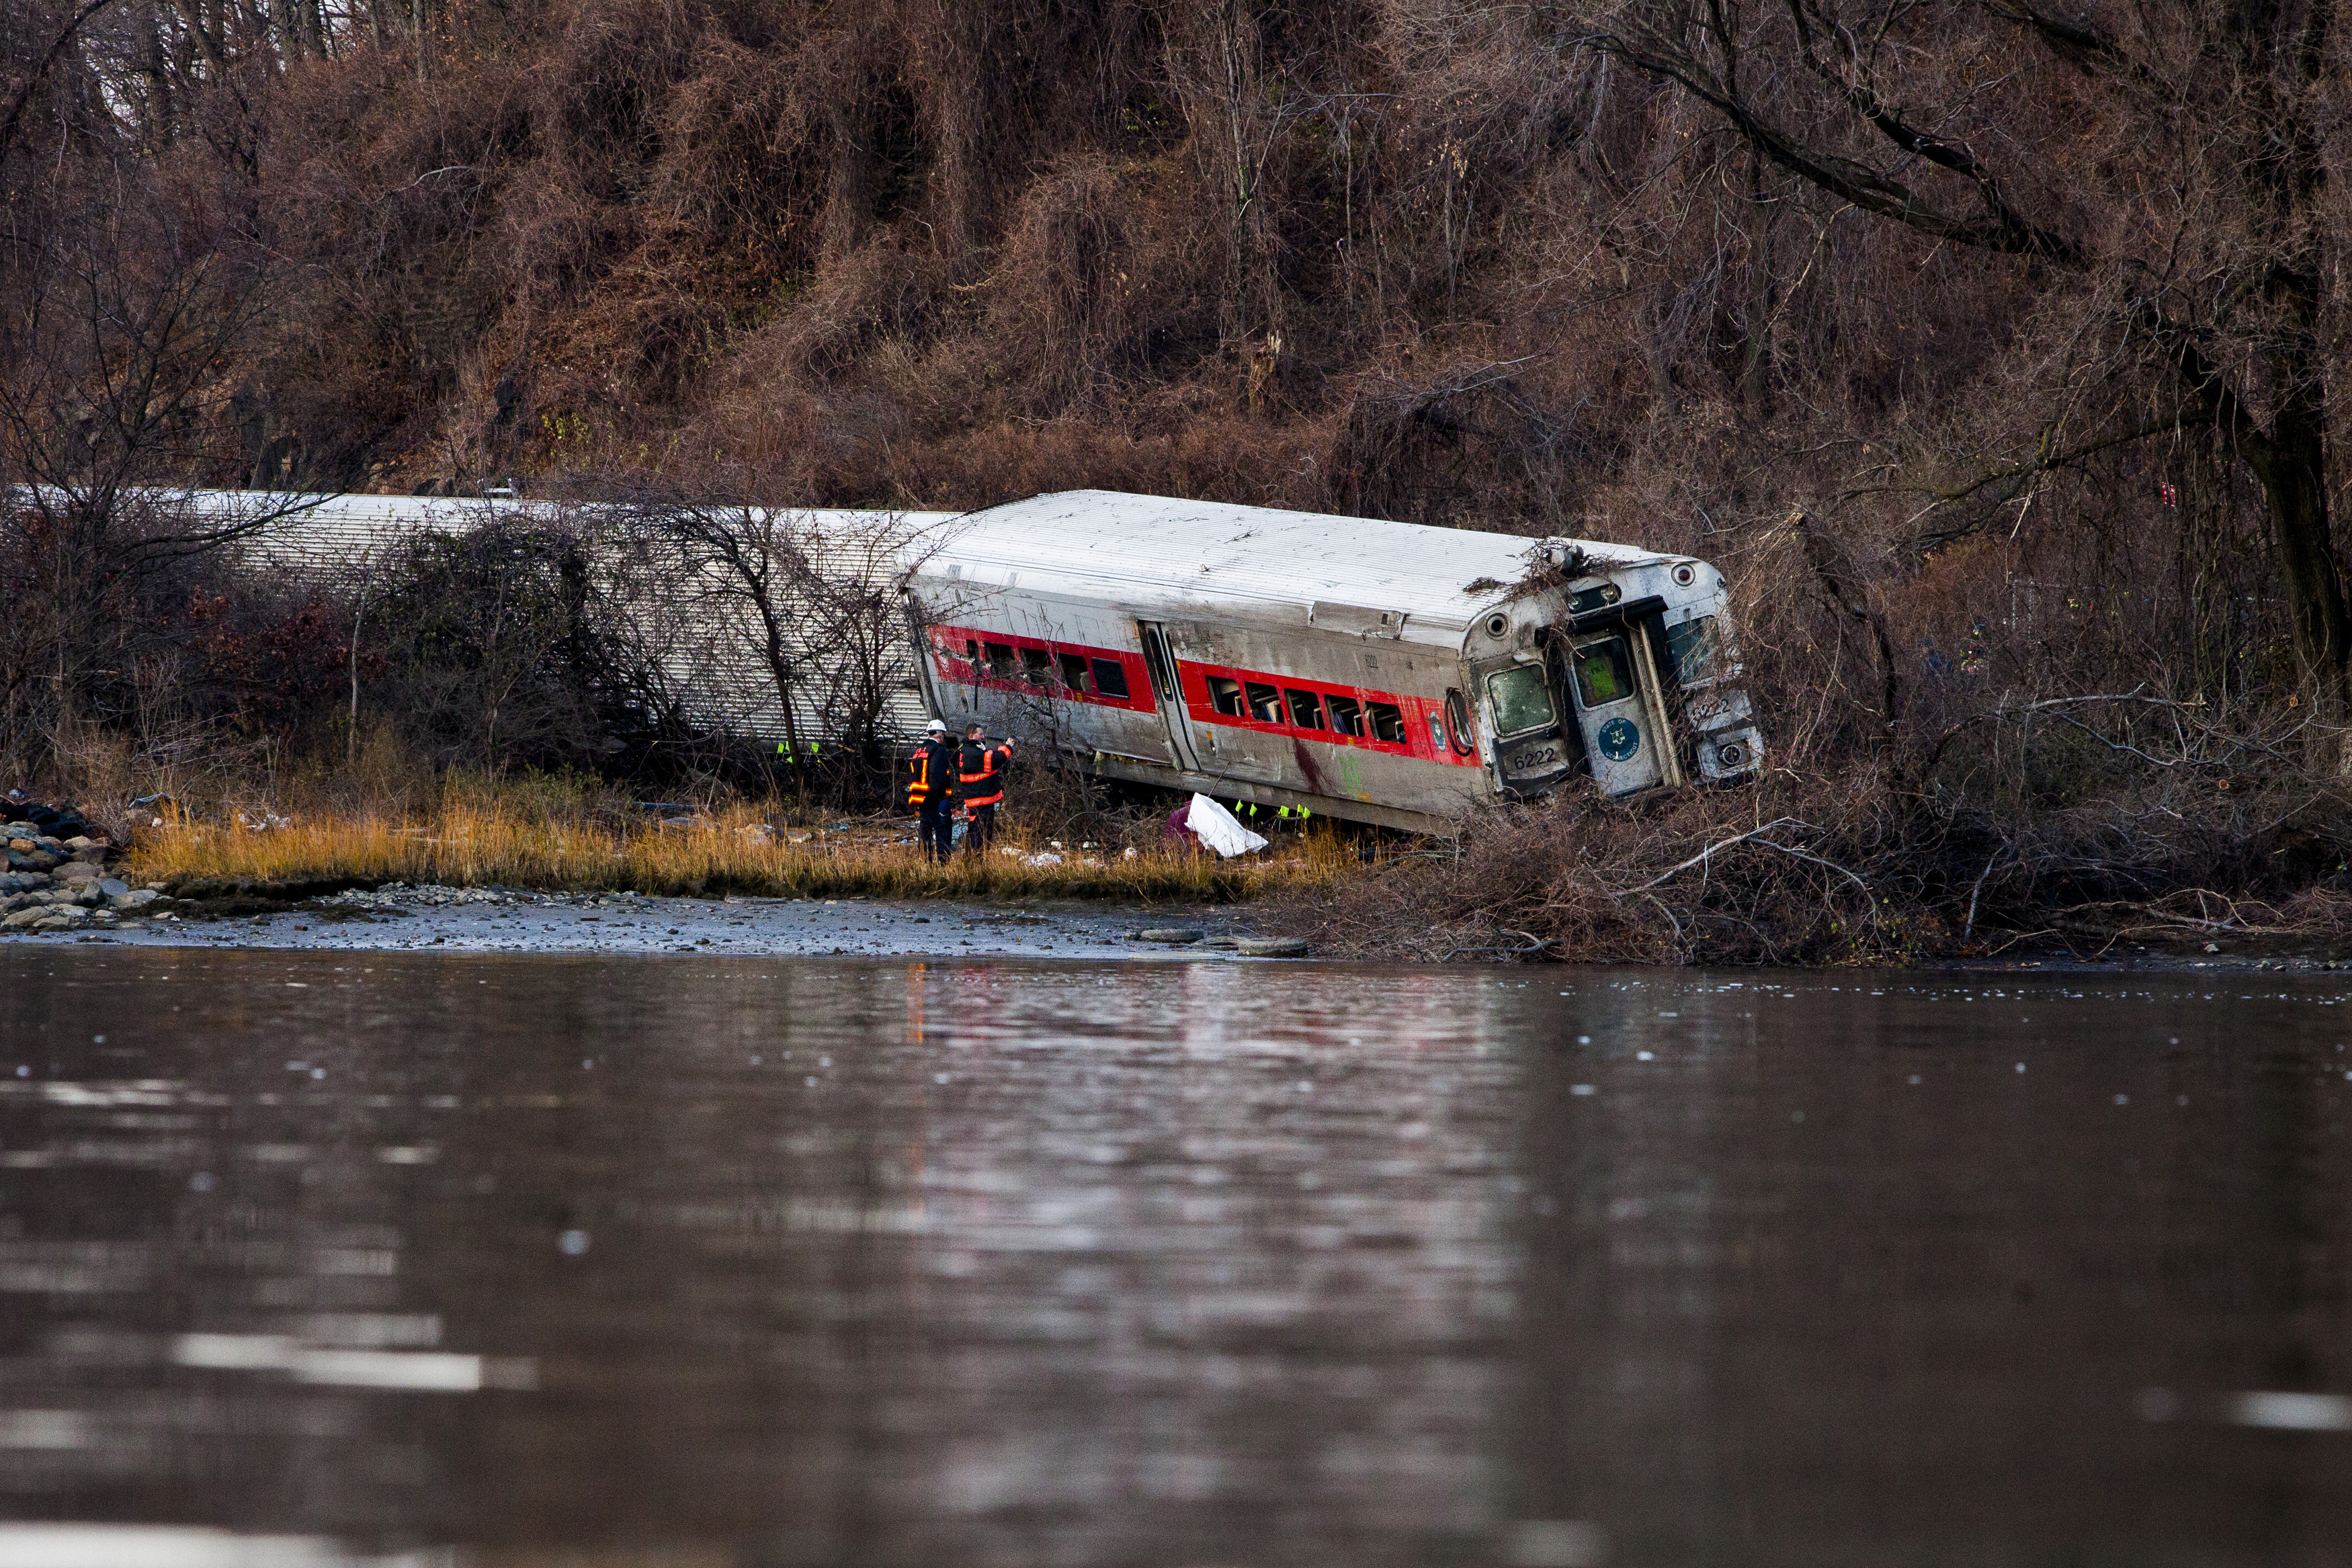 The wreckage of a Metro-North commuter train lies on its side after it derailed just north of the Spuyten Duyvil station December 1, 2013 in the Bronx, New York City.